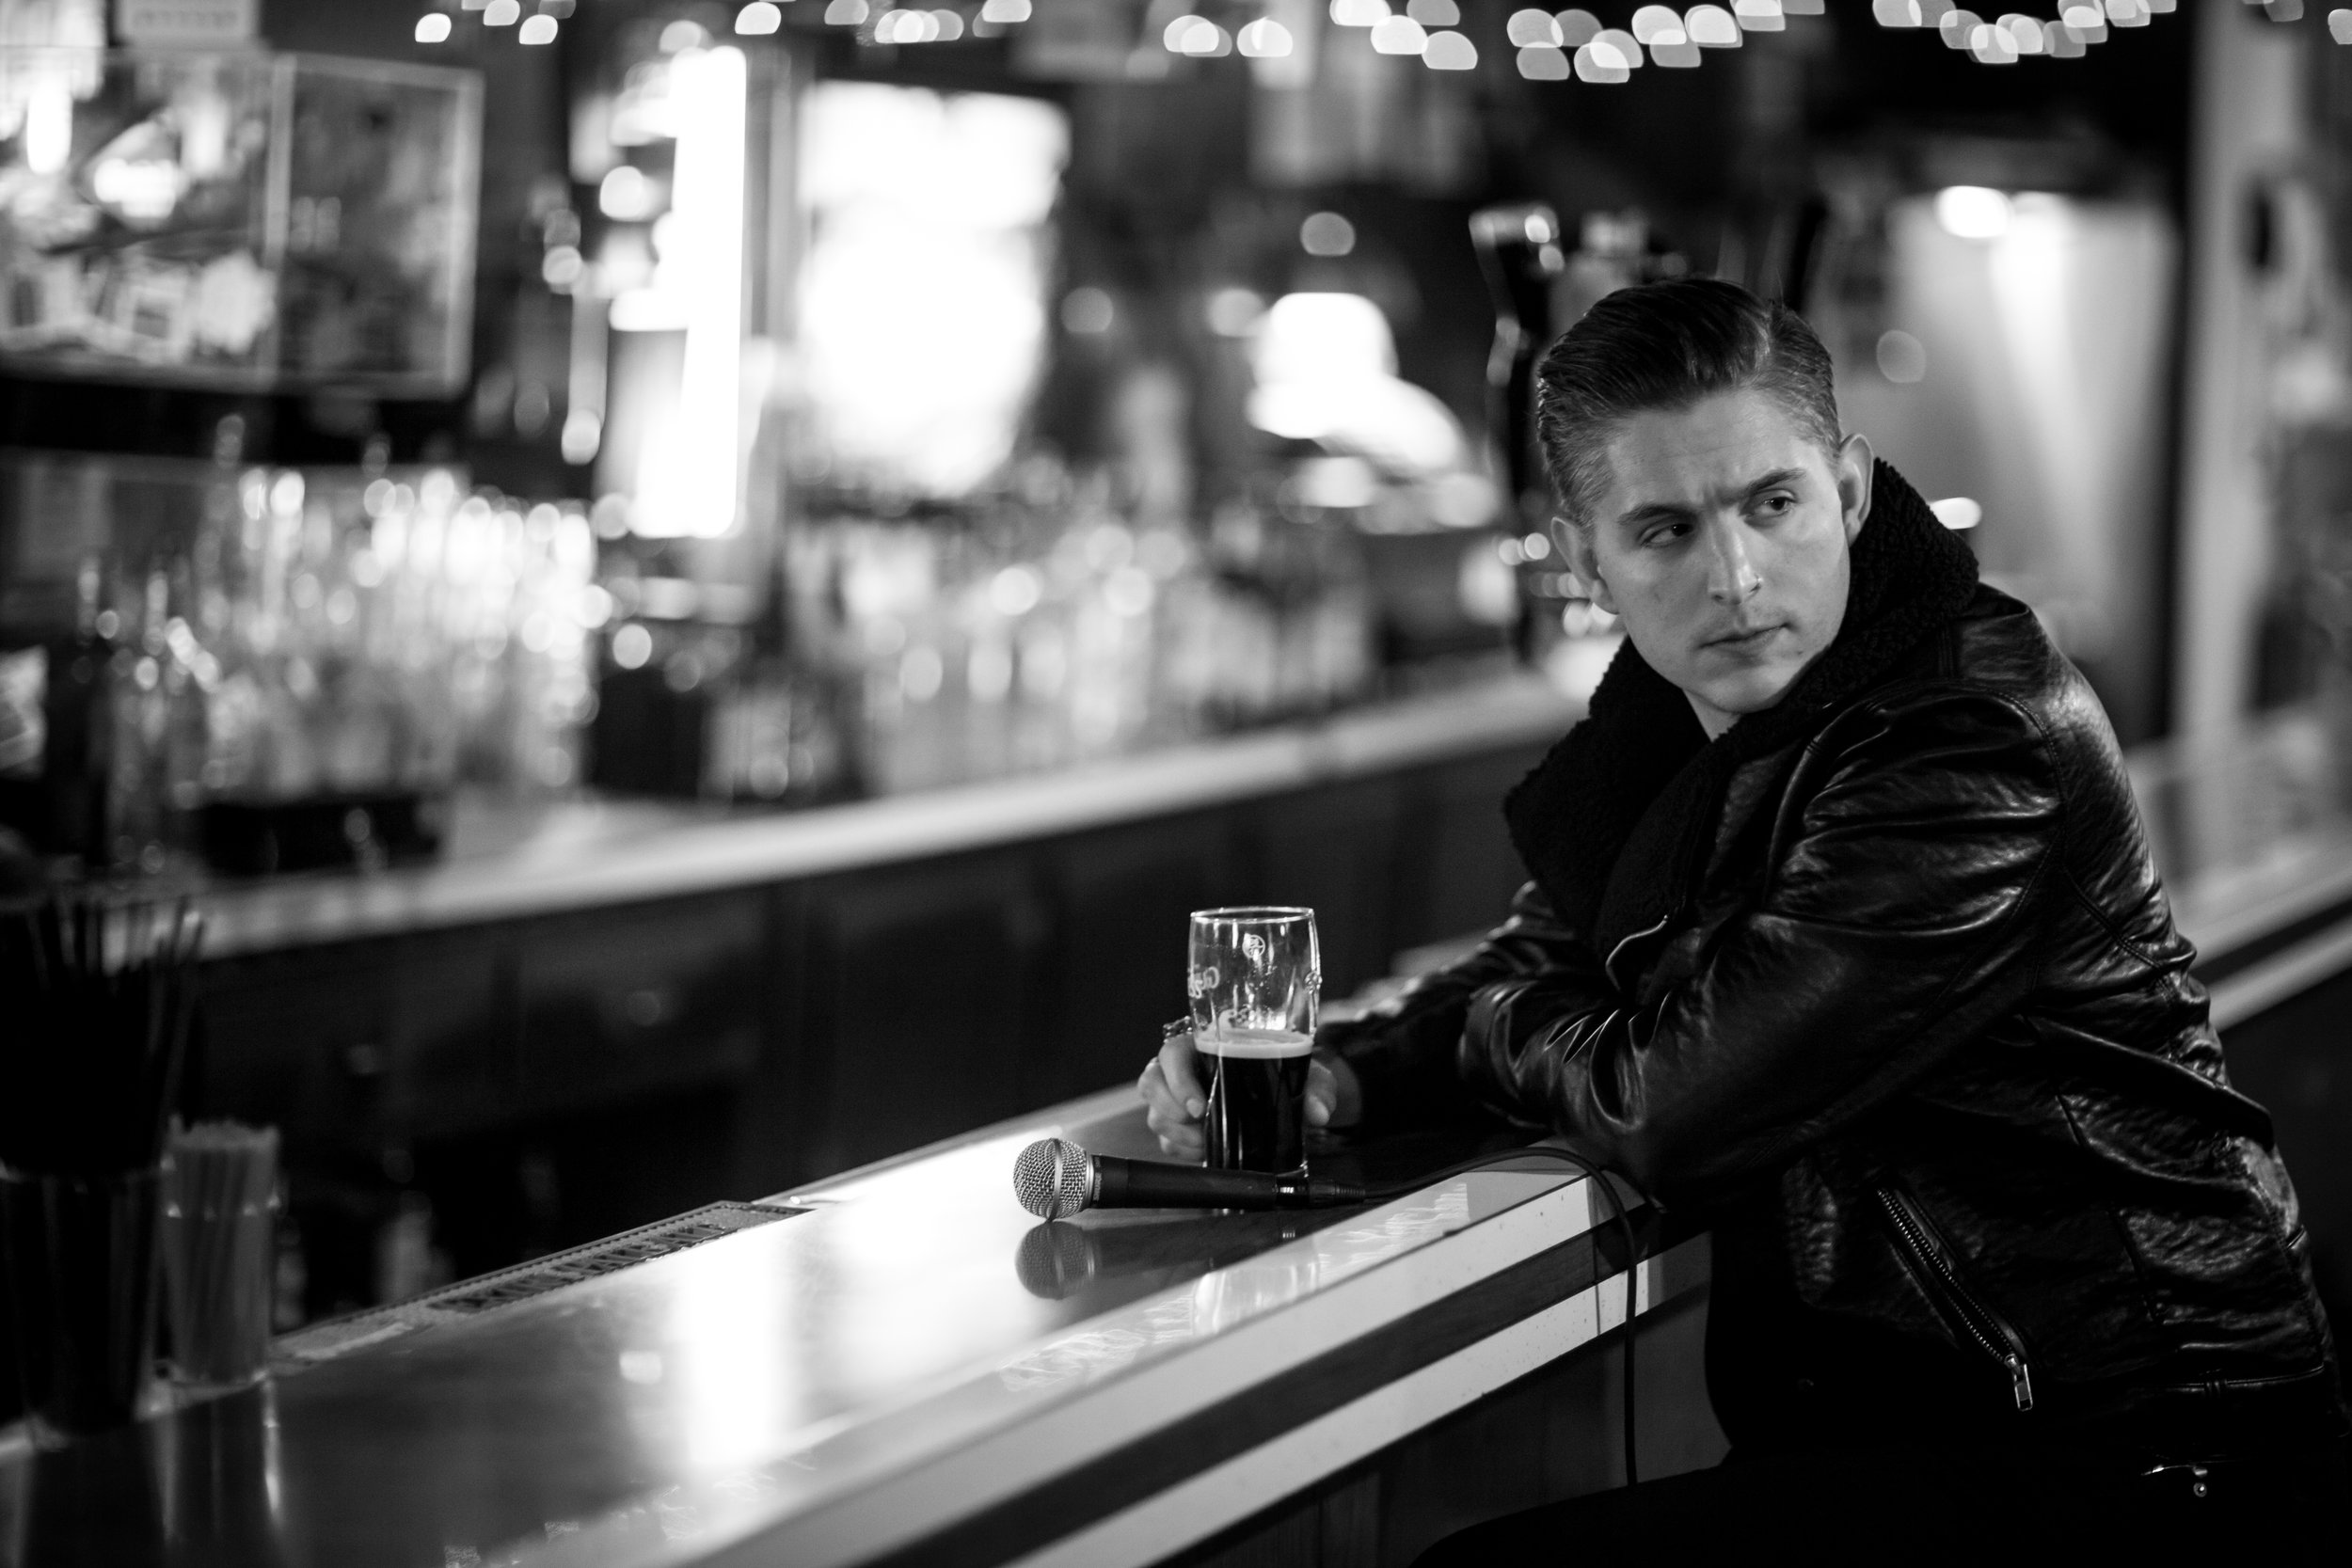 My name's Rob Morgan.I'm an internationally touring bassist and music-director who released a podcast this last year where I sit down with intriguing people over drinks to try and get past WHAT they do to find out WHO they are and WHY they do it. -